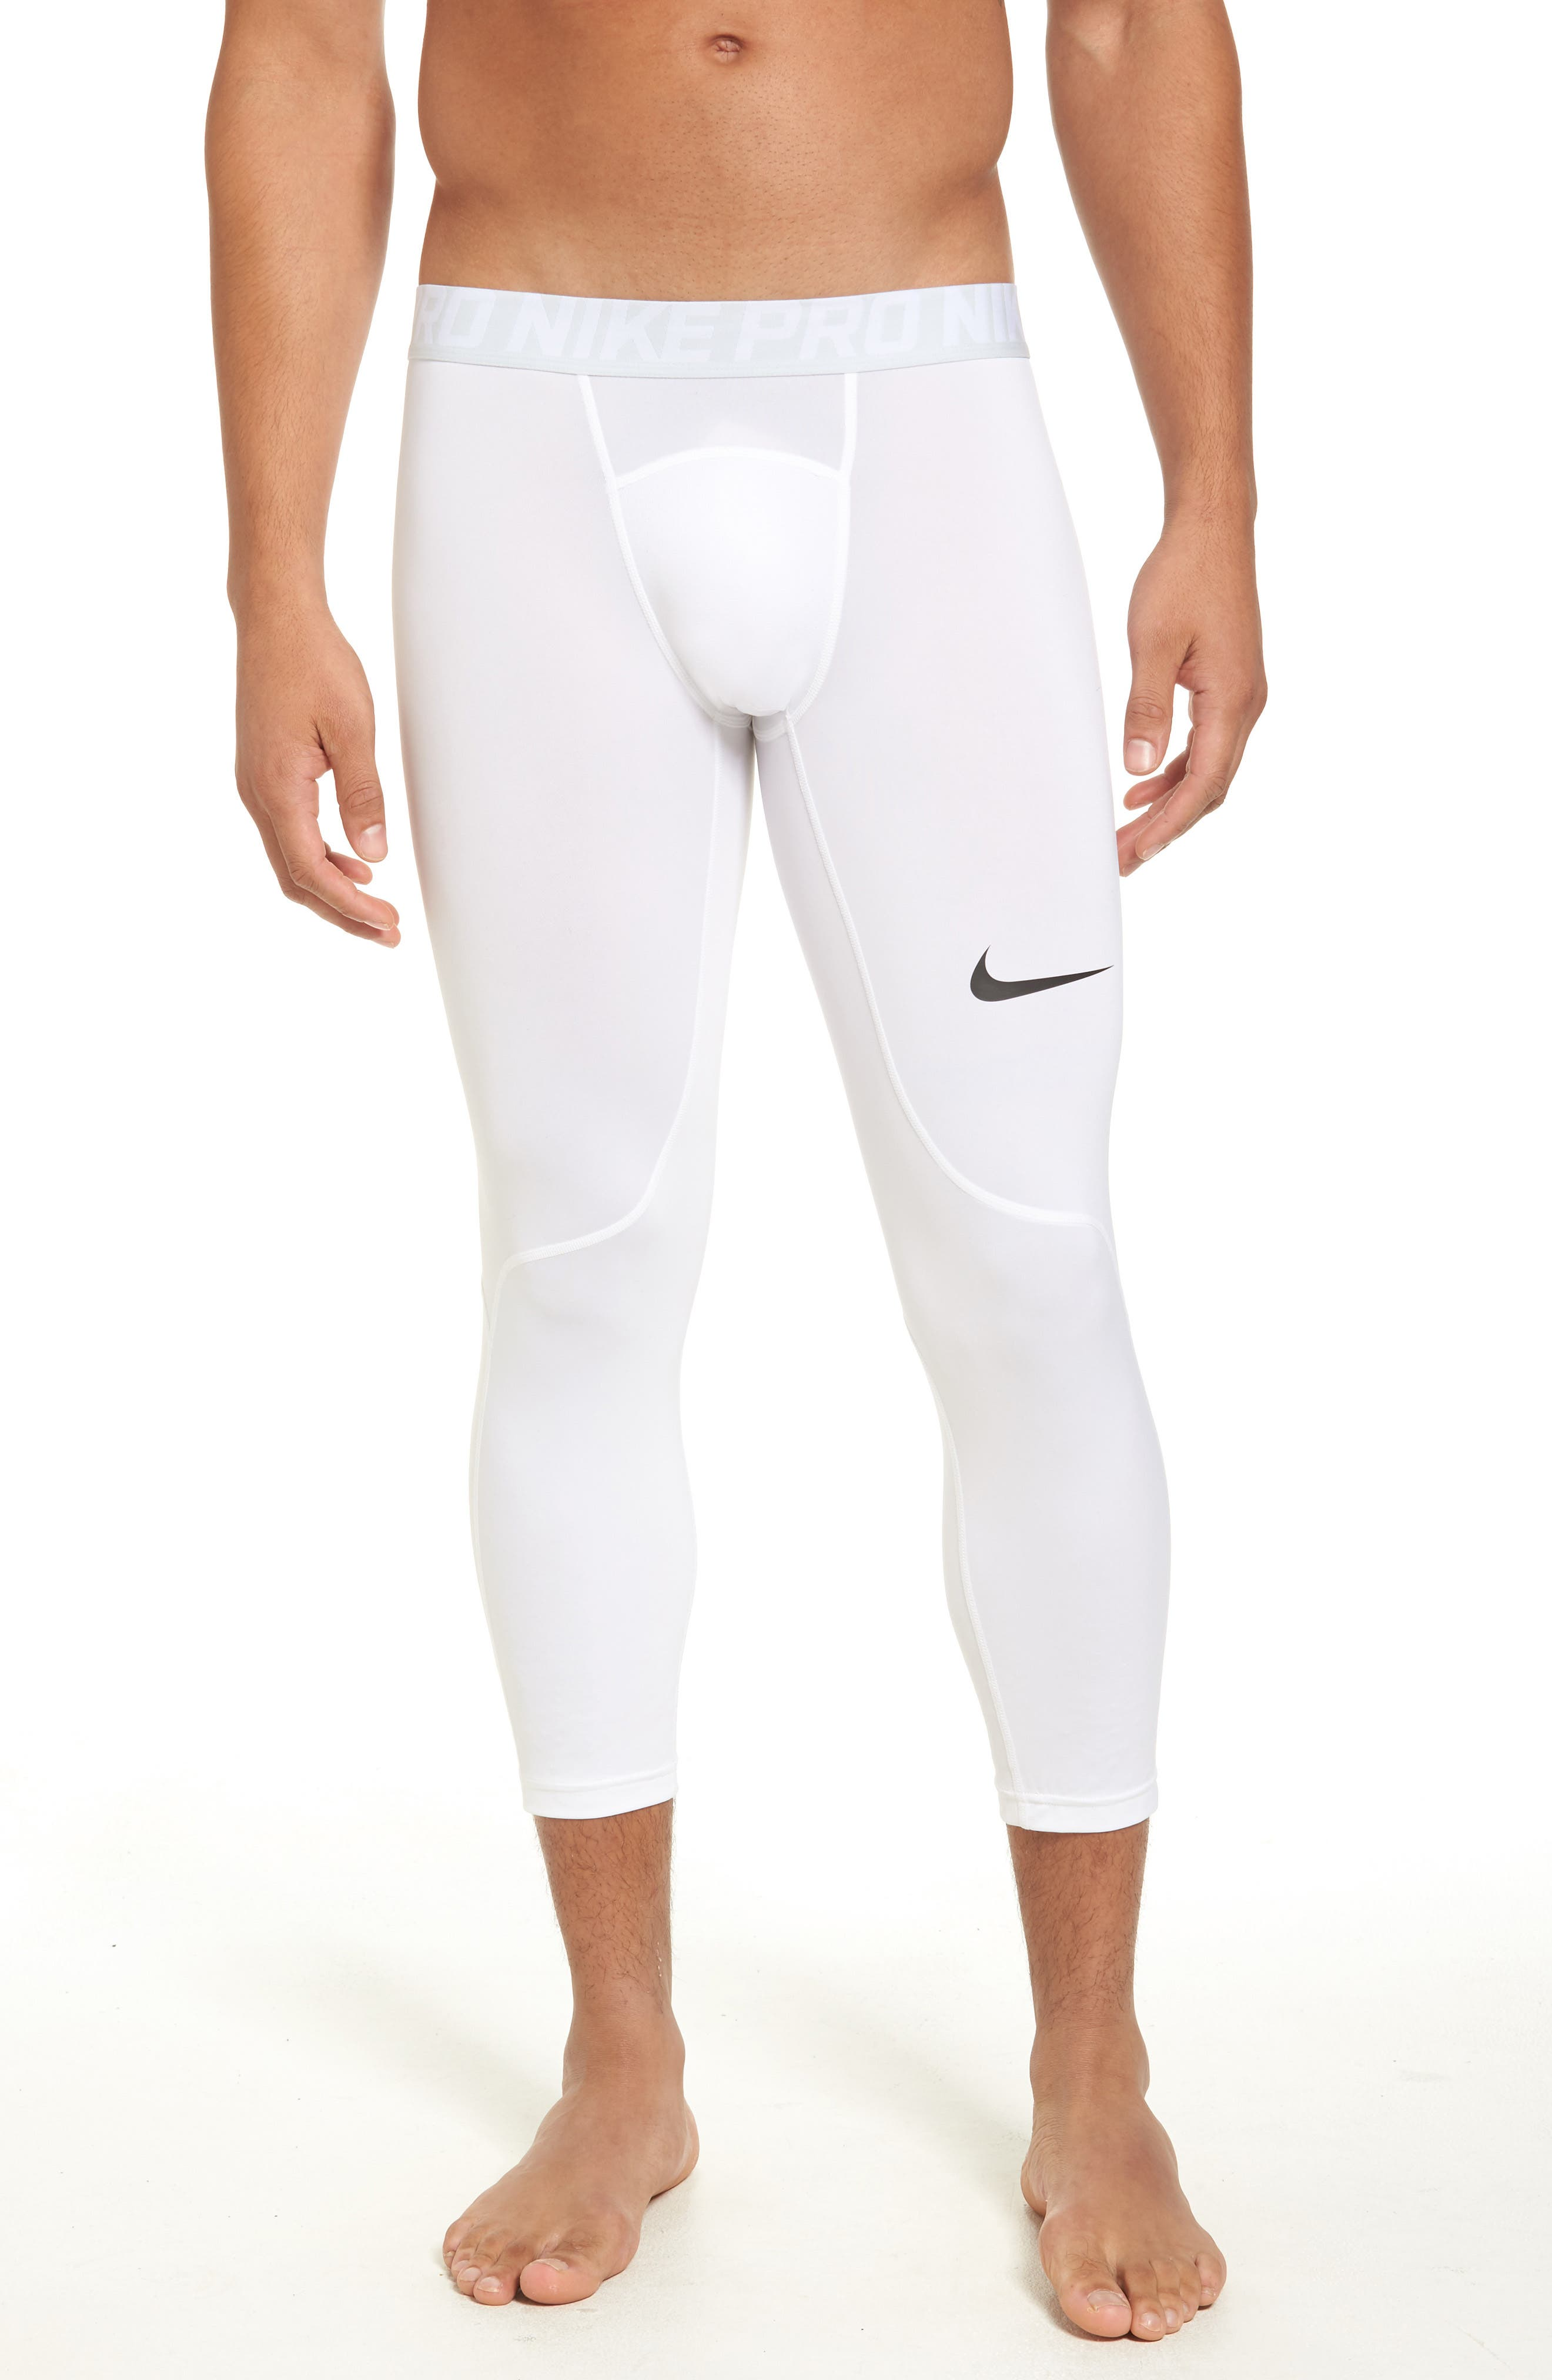 Nike Pro Three Quarter Training Tights (Regular Retail Price: $32.00)